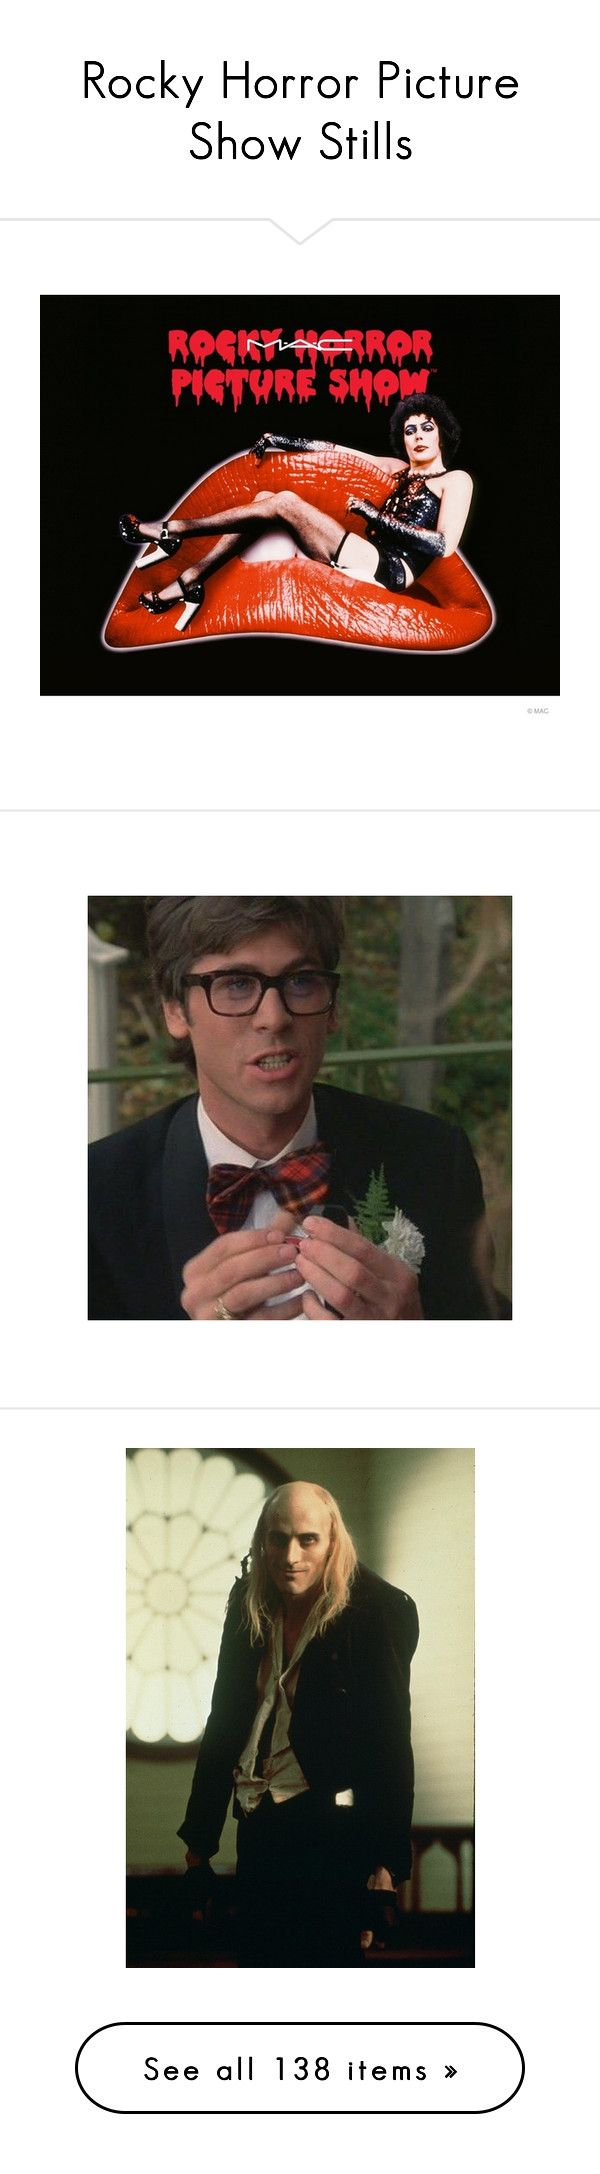 """""""Rocky Horror Picture Show Stills"""" by blood-red-queen ❤ liked on Polyvore featuring mens, costumes, rocky horror picture show costumes, rocky horror picture show halloween costumes, rocky horror costumes, rocky horror halloween costume, rocky horror, people and pictures"""